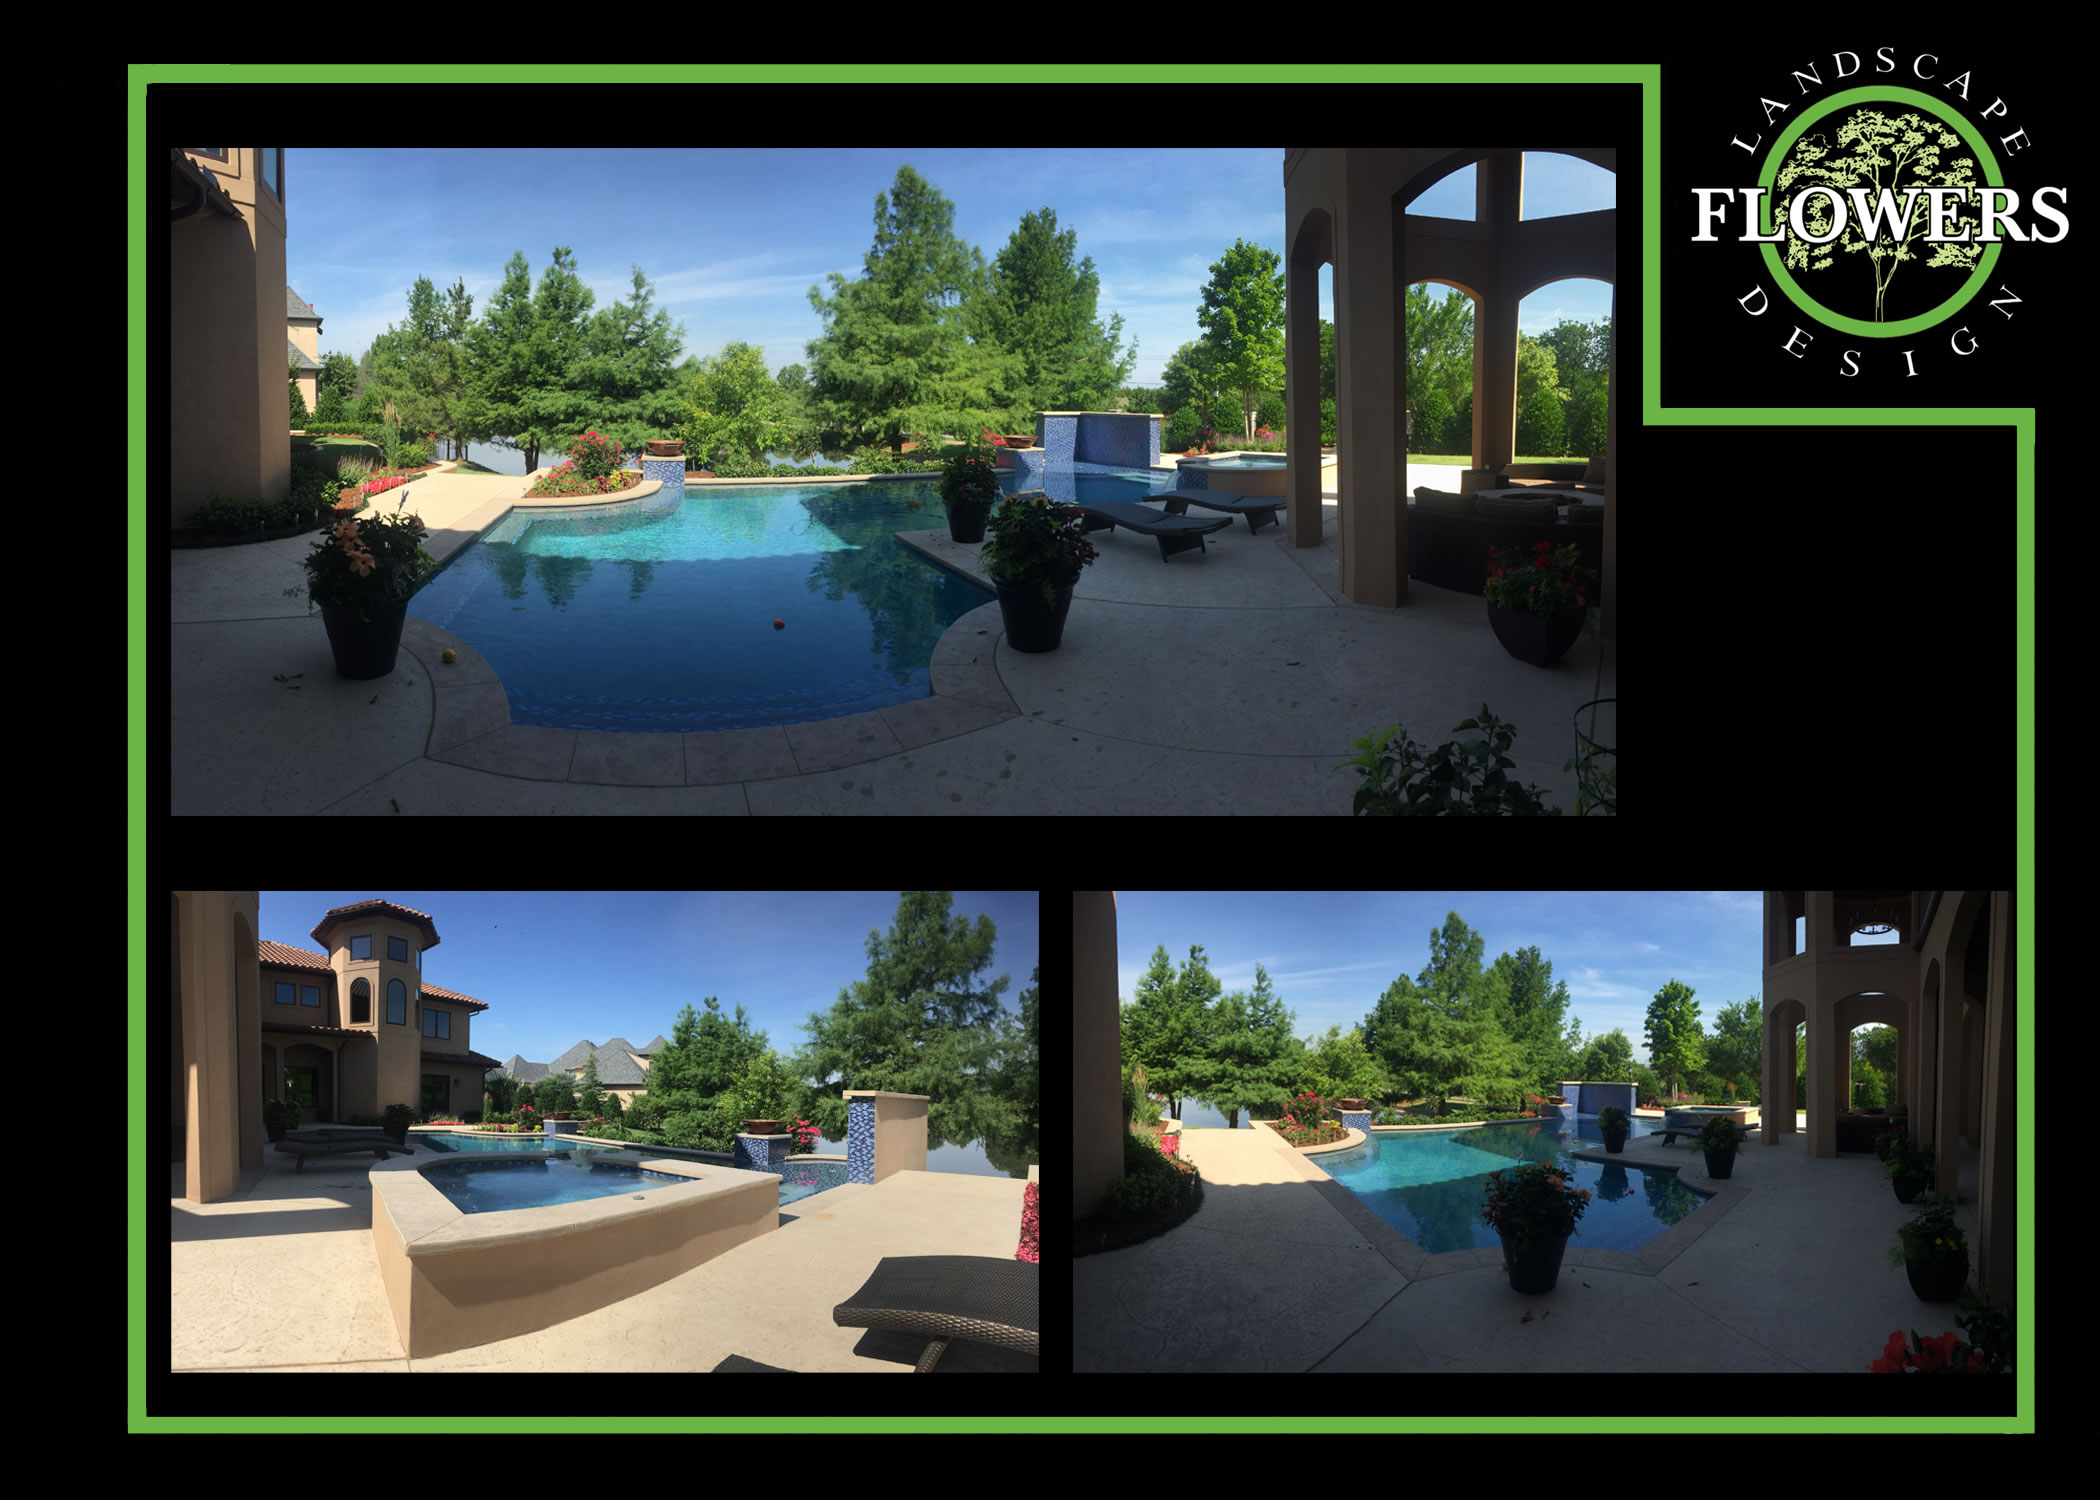 Pool Design And Construction swimming pools design and construction simple swimming pools design and construction inspirational home decorating fantastical and Pool Design And Construction